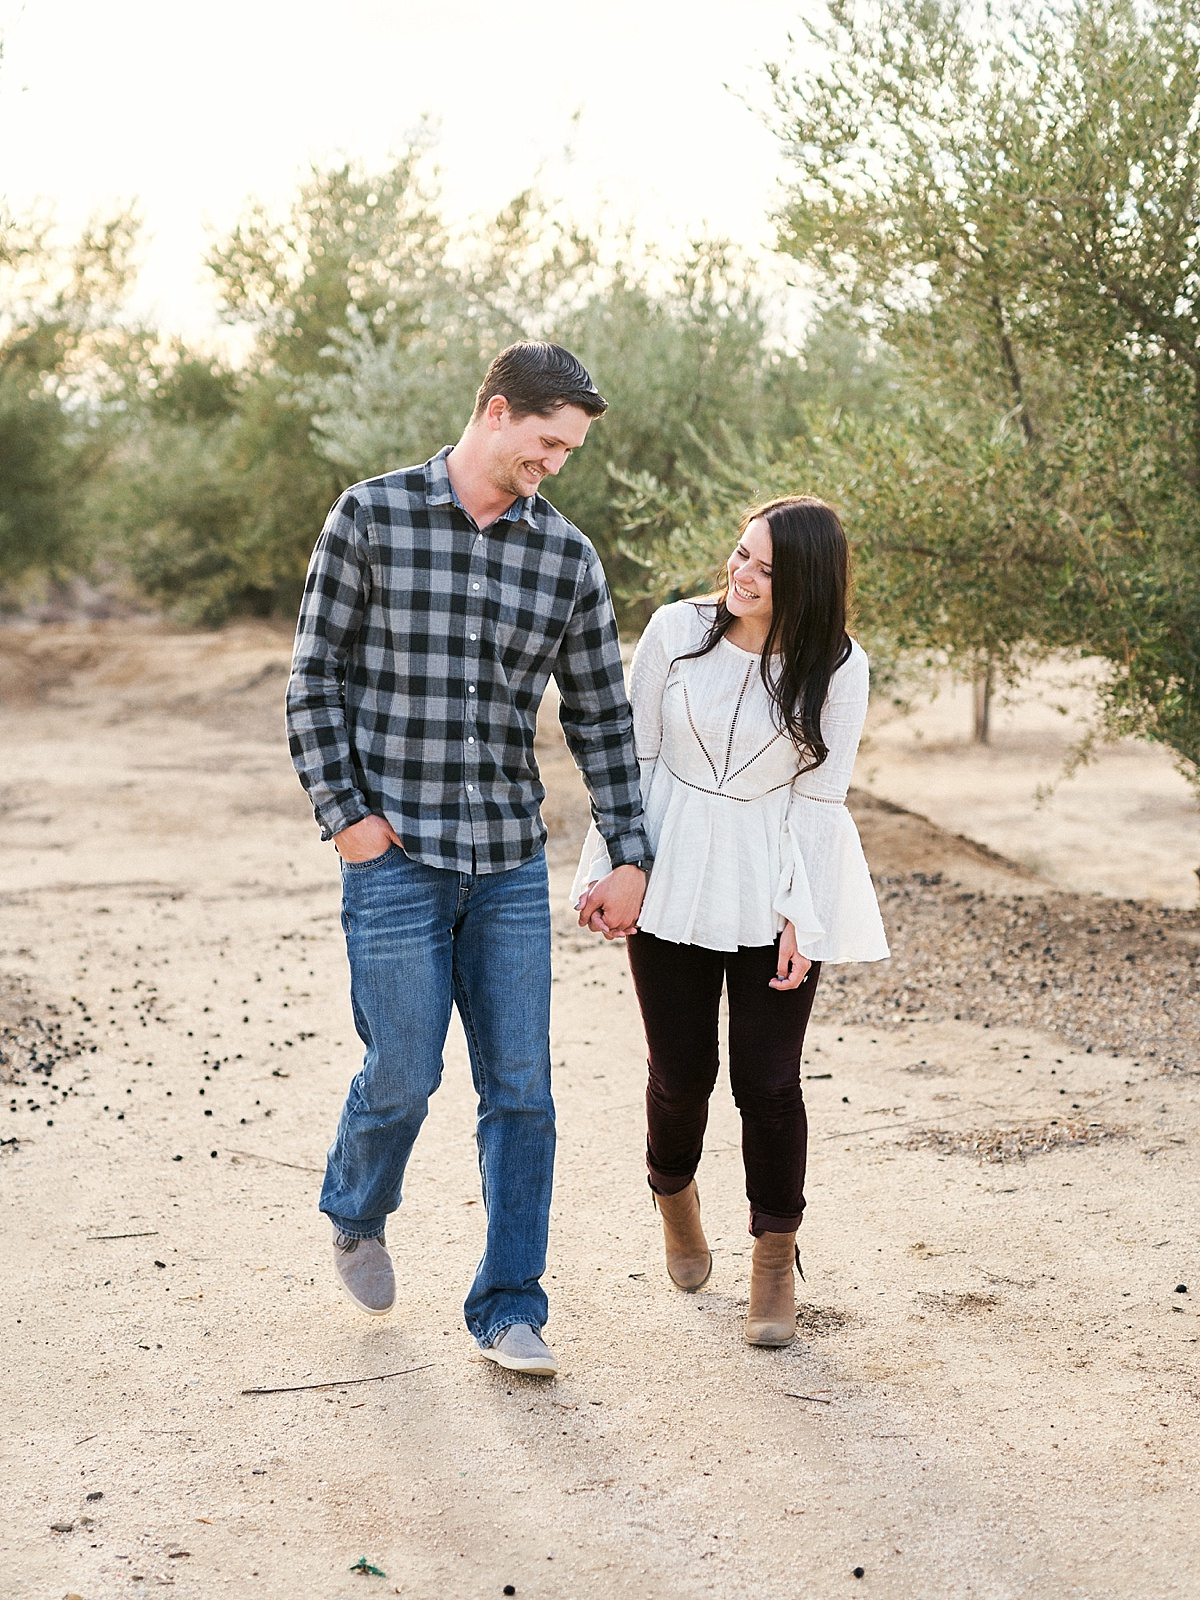 temecula-vineyard-engagement-proposal_0015.jpg